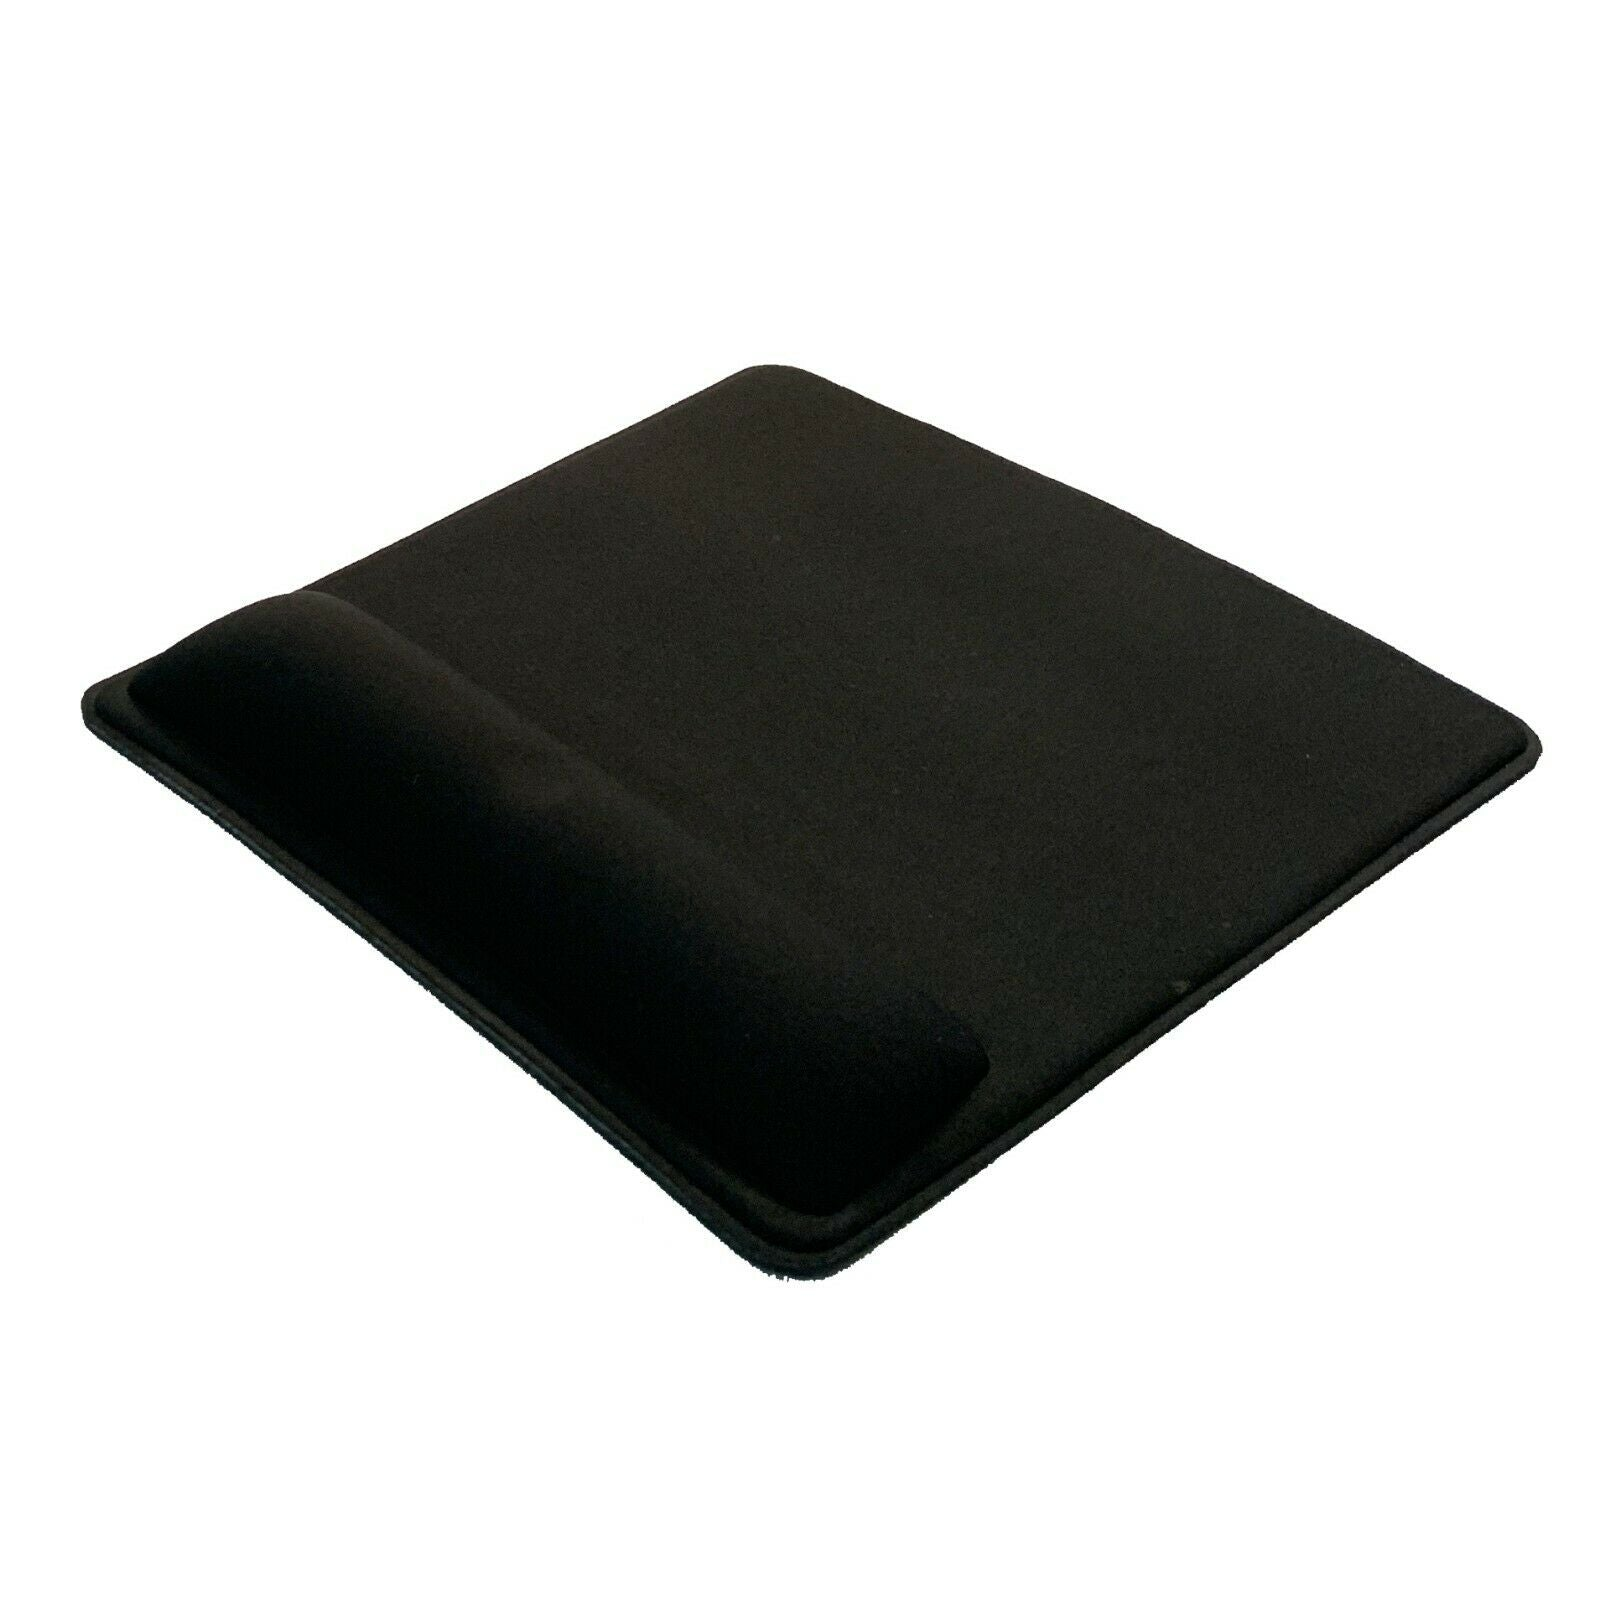 Ergonomic Wrist Rest Computer Laptop Desktop PC Gaming MOUSE PAD MAT Mousepad